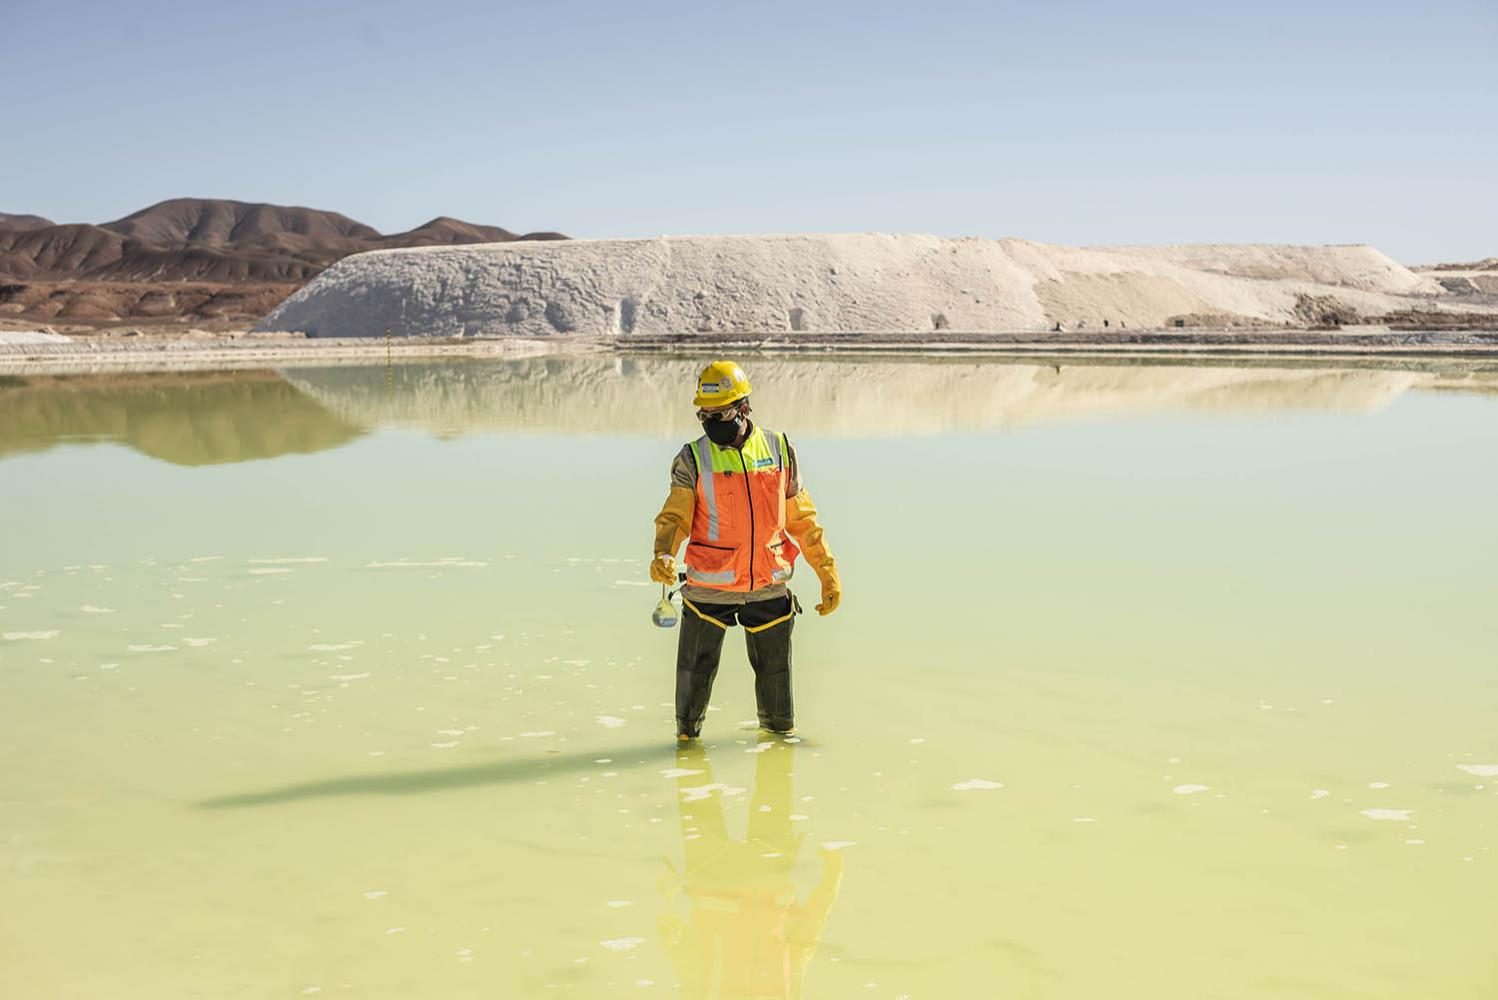 A mine worker takes samples from a brine pool at the Albemarle plant in the Atacama Desert, Chile. 2021